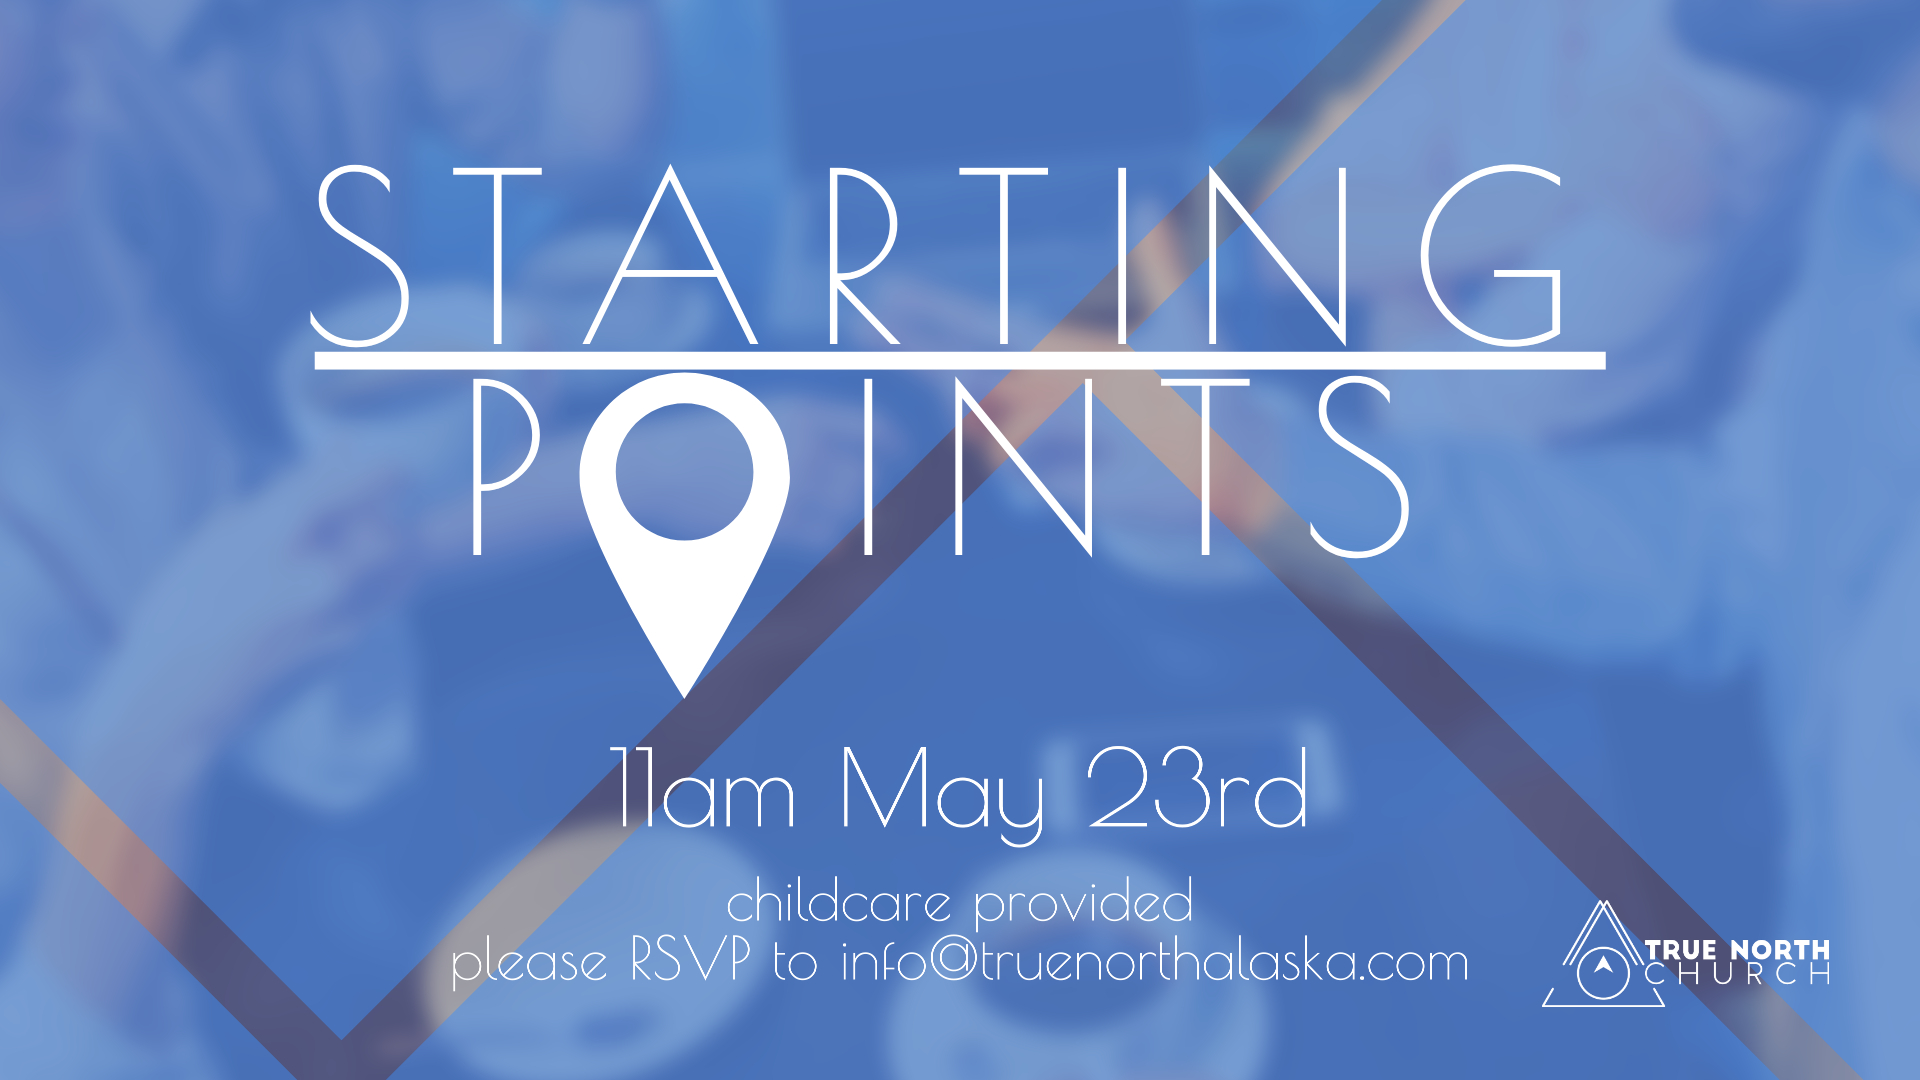 Starting Points Announcement May 23rd image